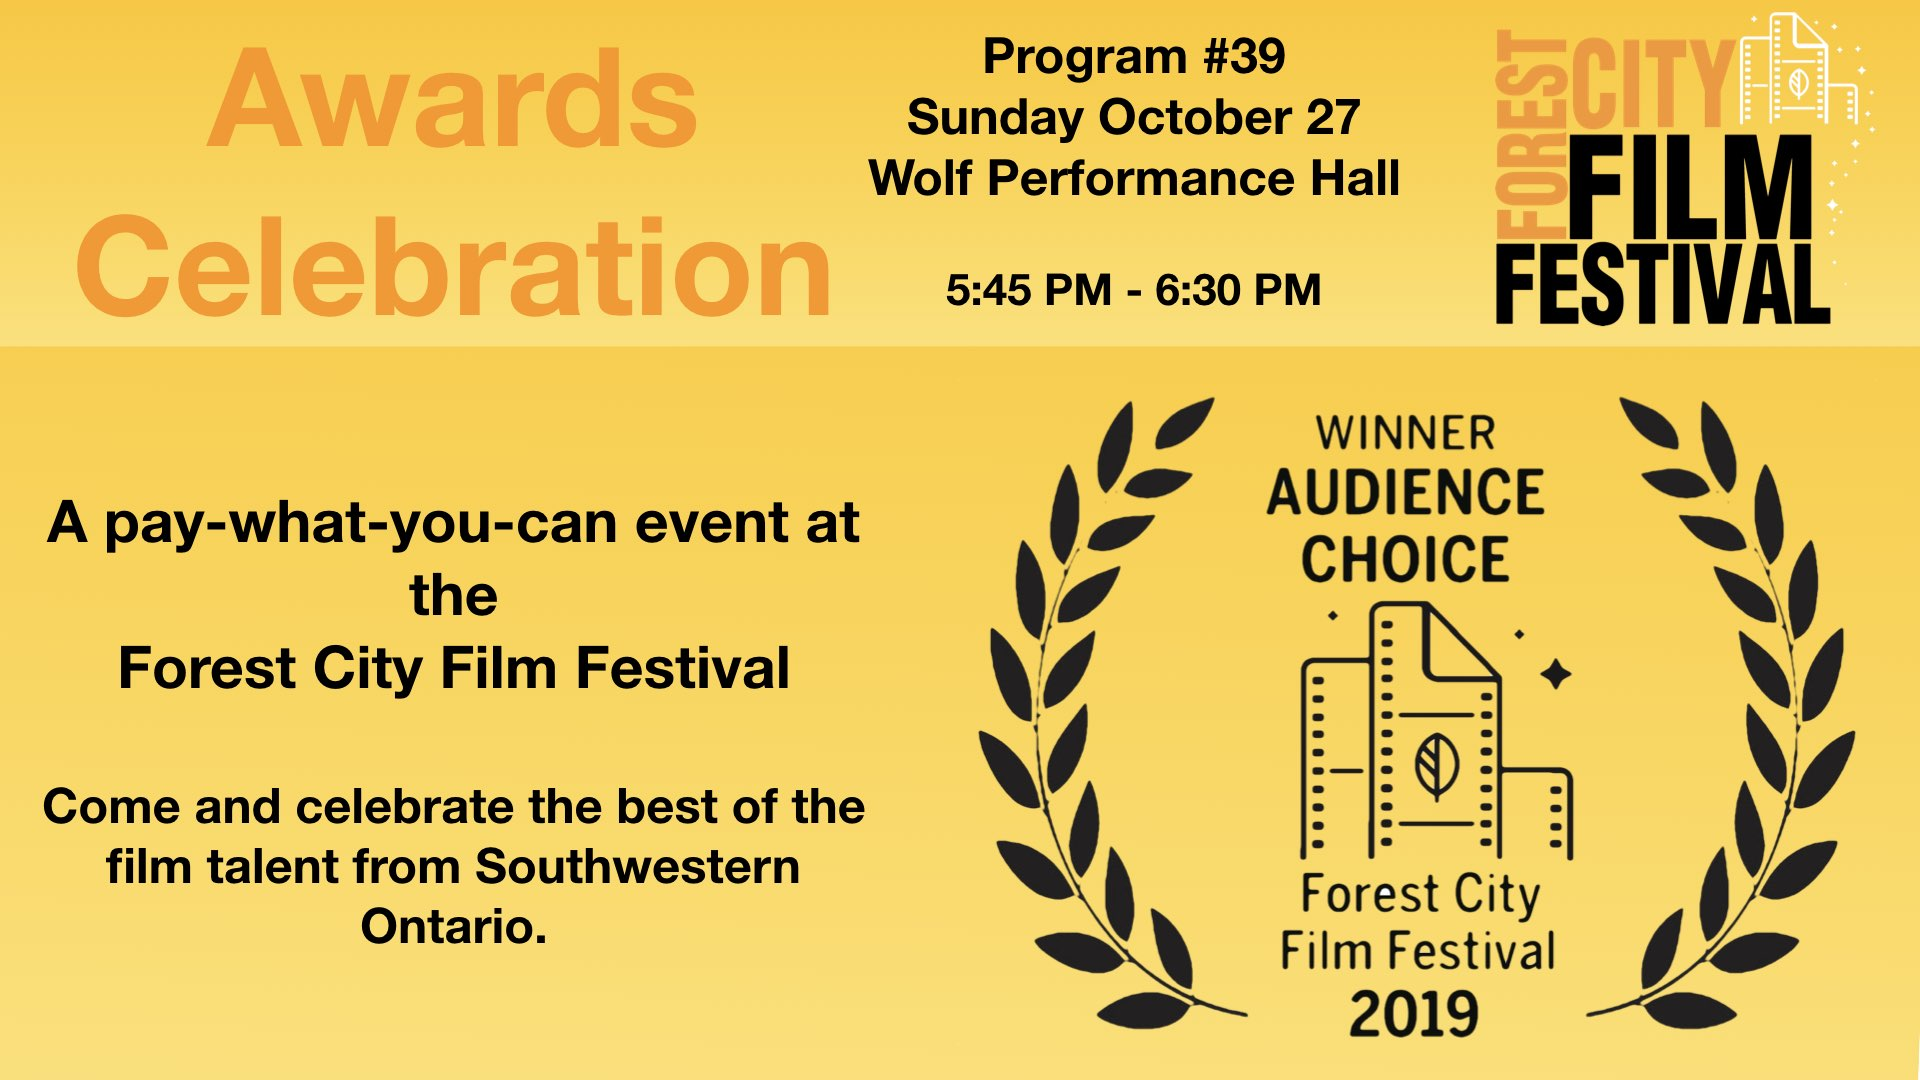 FCFF 2019 - Sunday Evening at Wolf, Program #39 - Awards Celebration